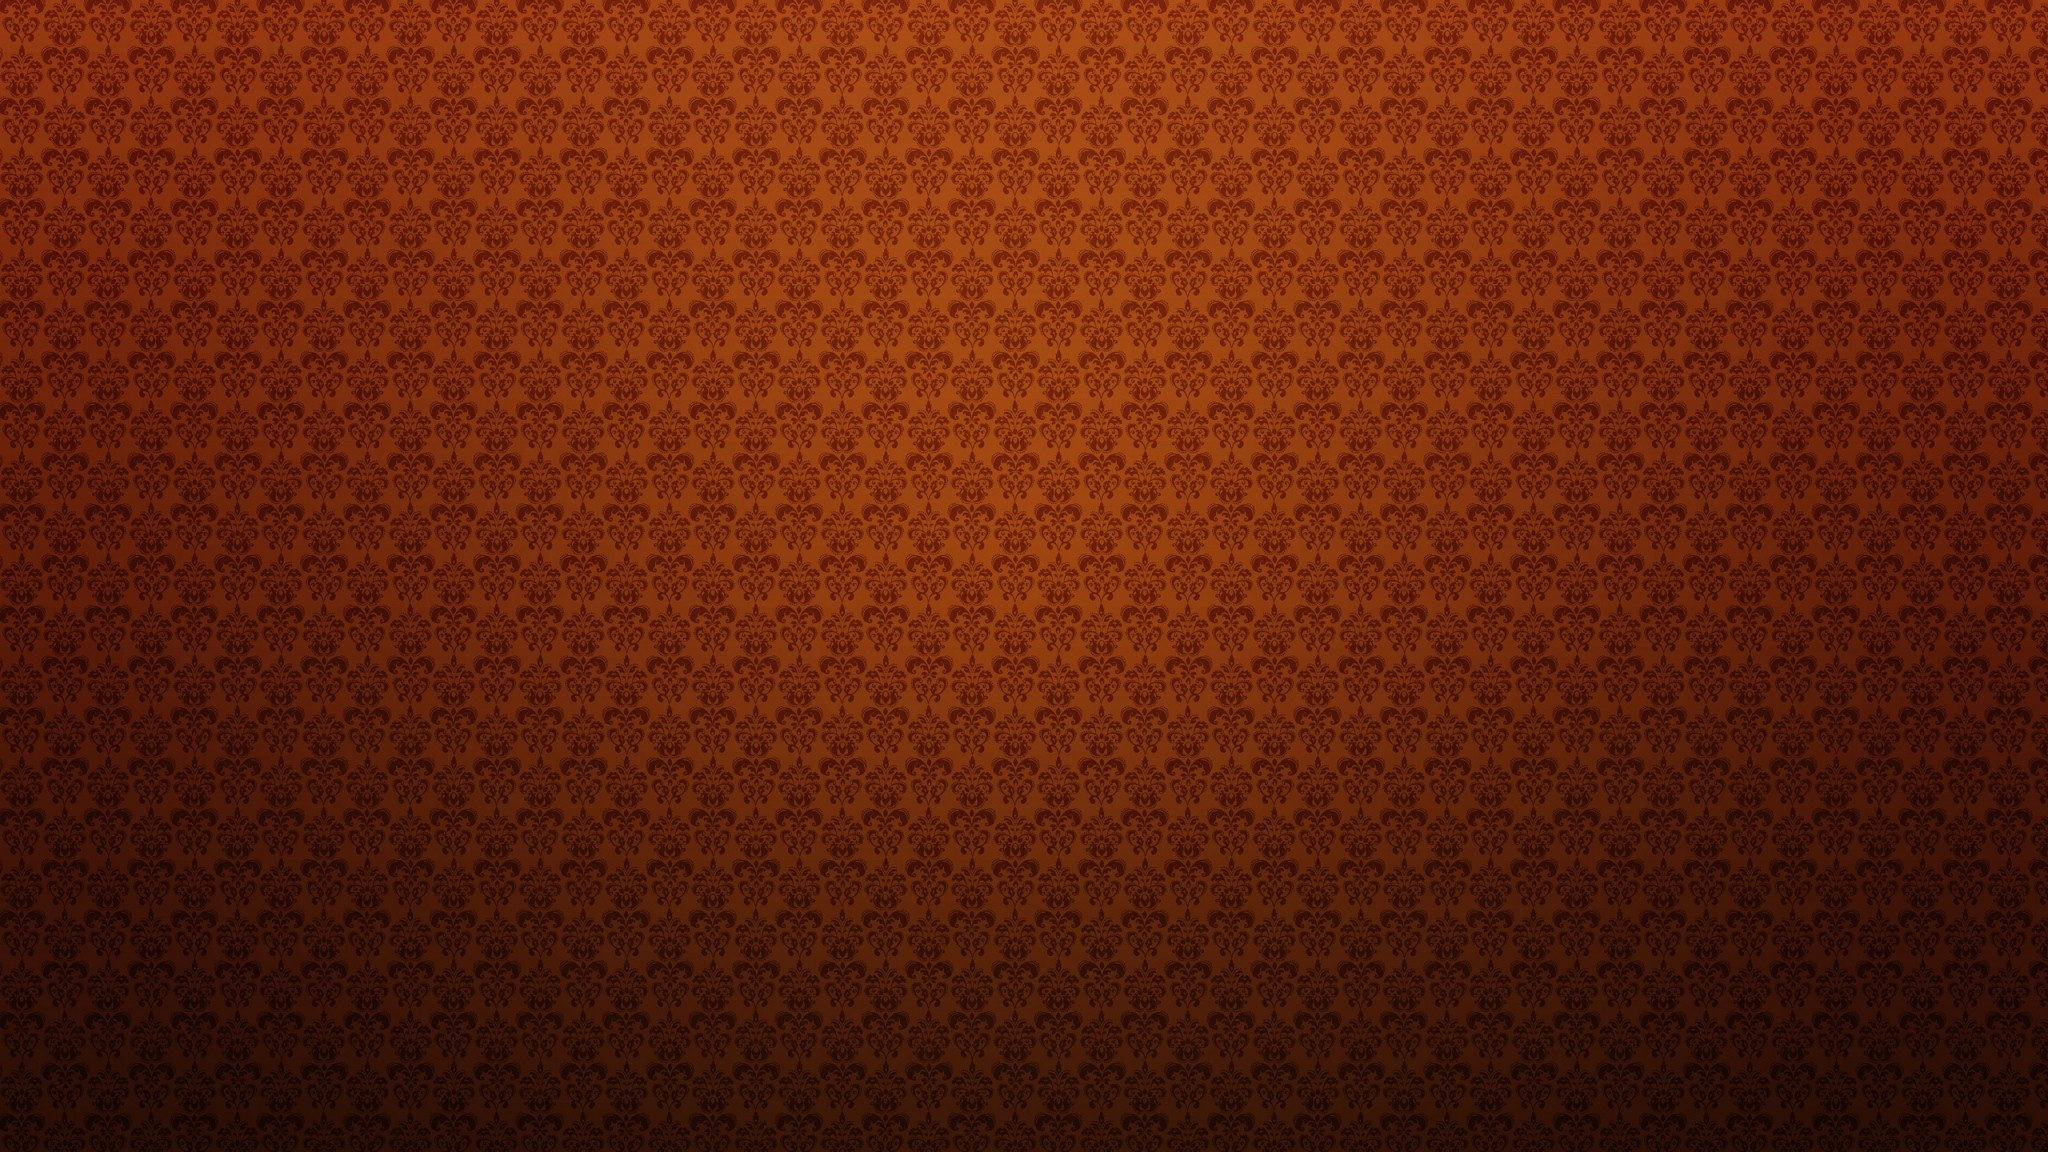 Wallpaper patterns, light, colorful, texture, background